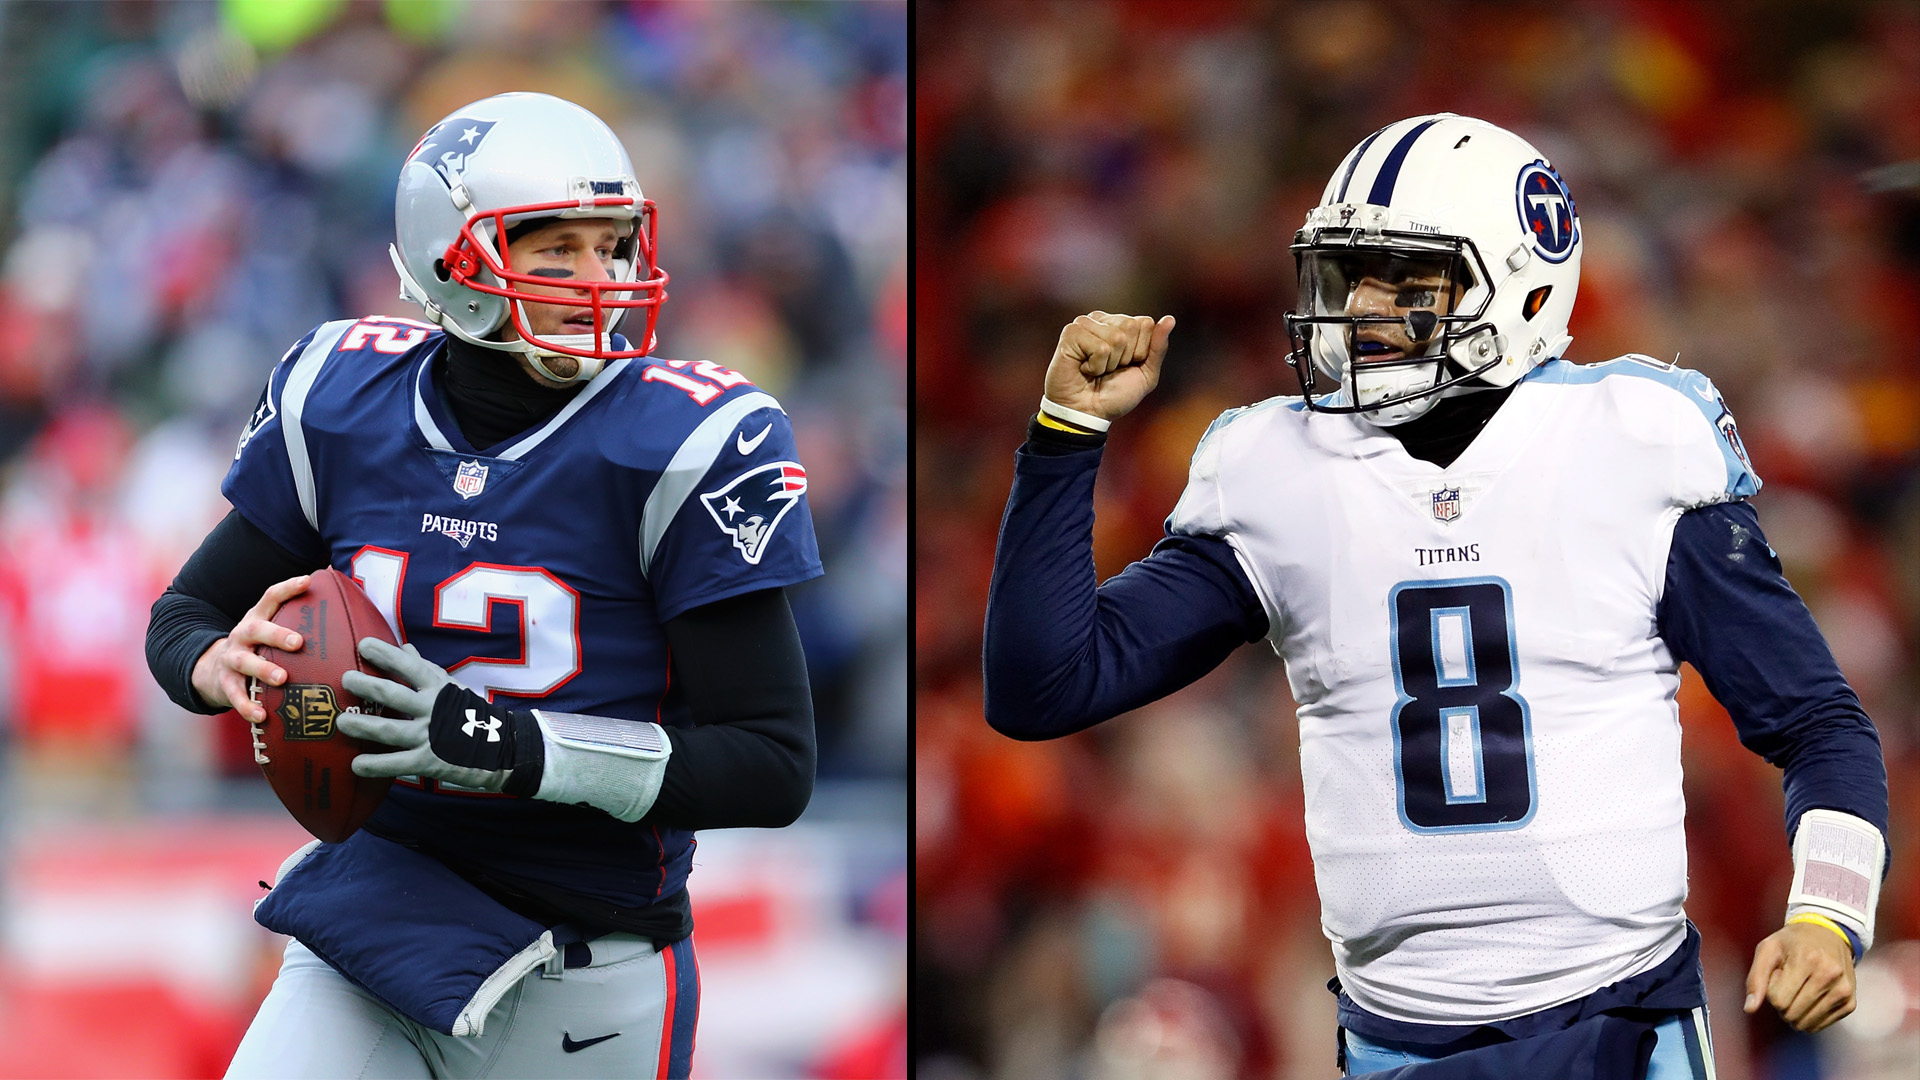 'Play our best:' Brady brushes off controversy, focuses on Titans